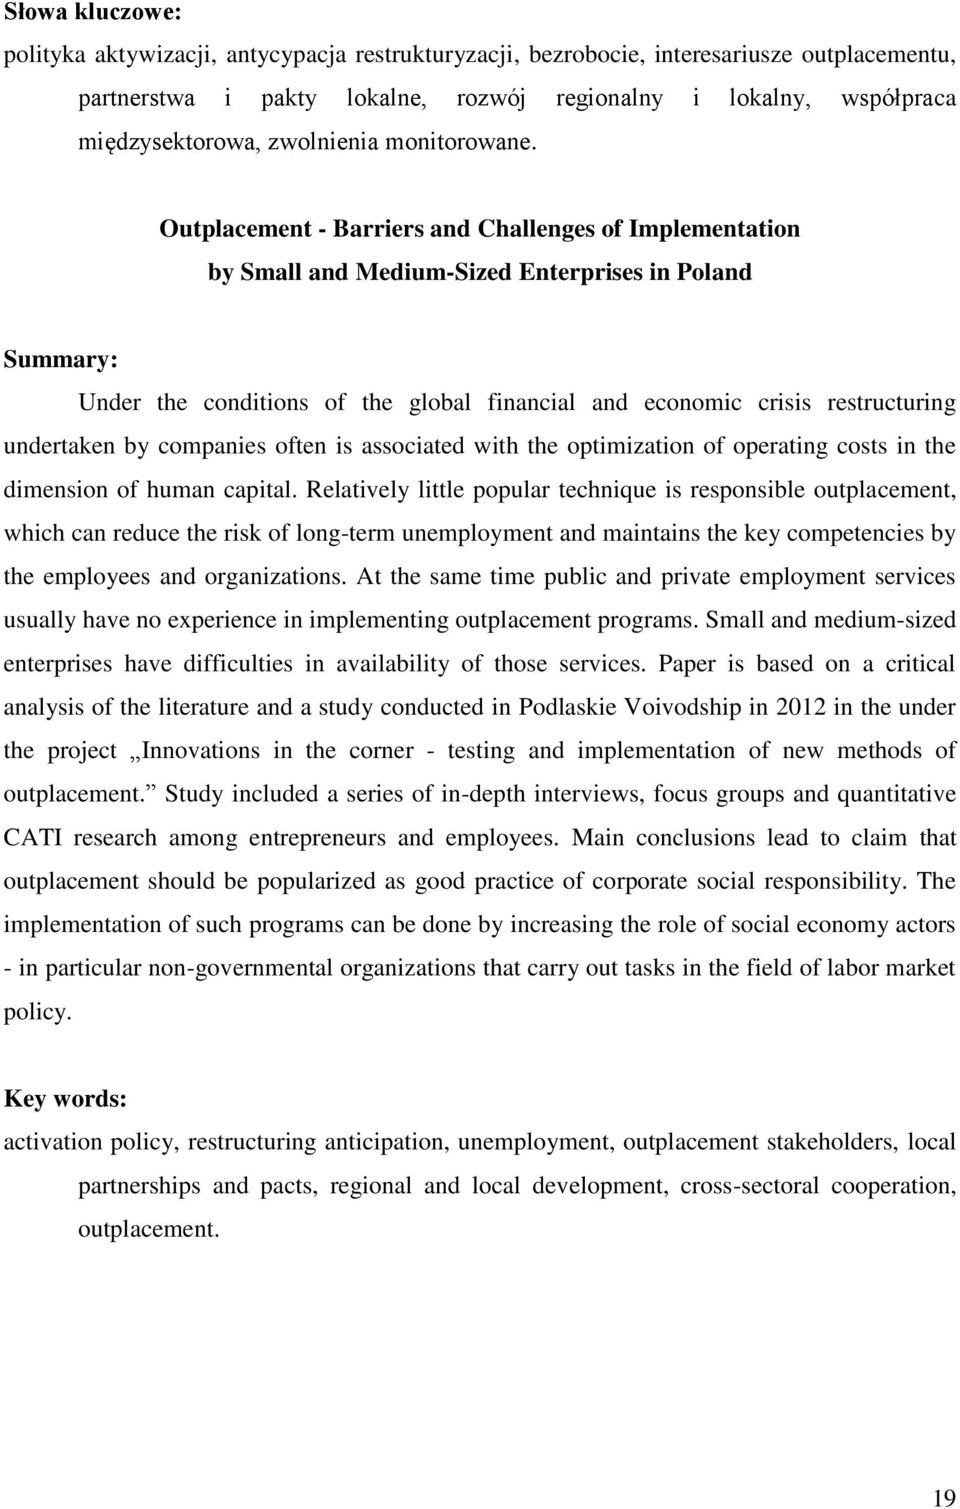 Outplacement - Barriers and Challenges of Implementation by Small and Medium-Sized Enterprises in Poland Summary: Under the conditions of the global financial and economic crisis restructuring